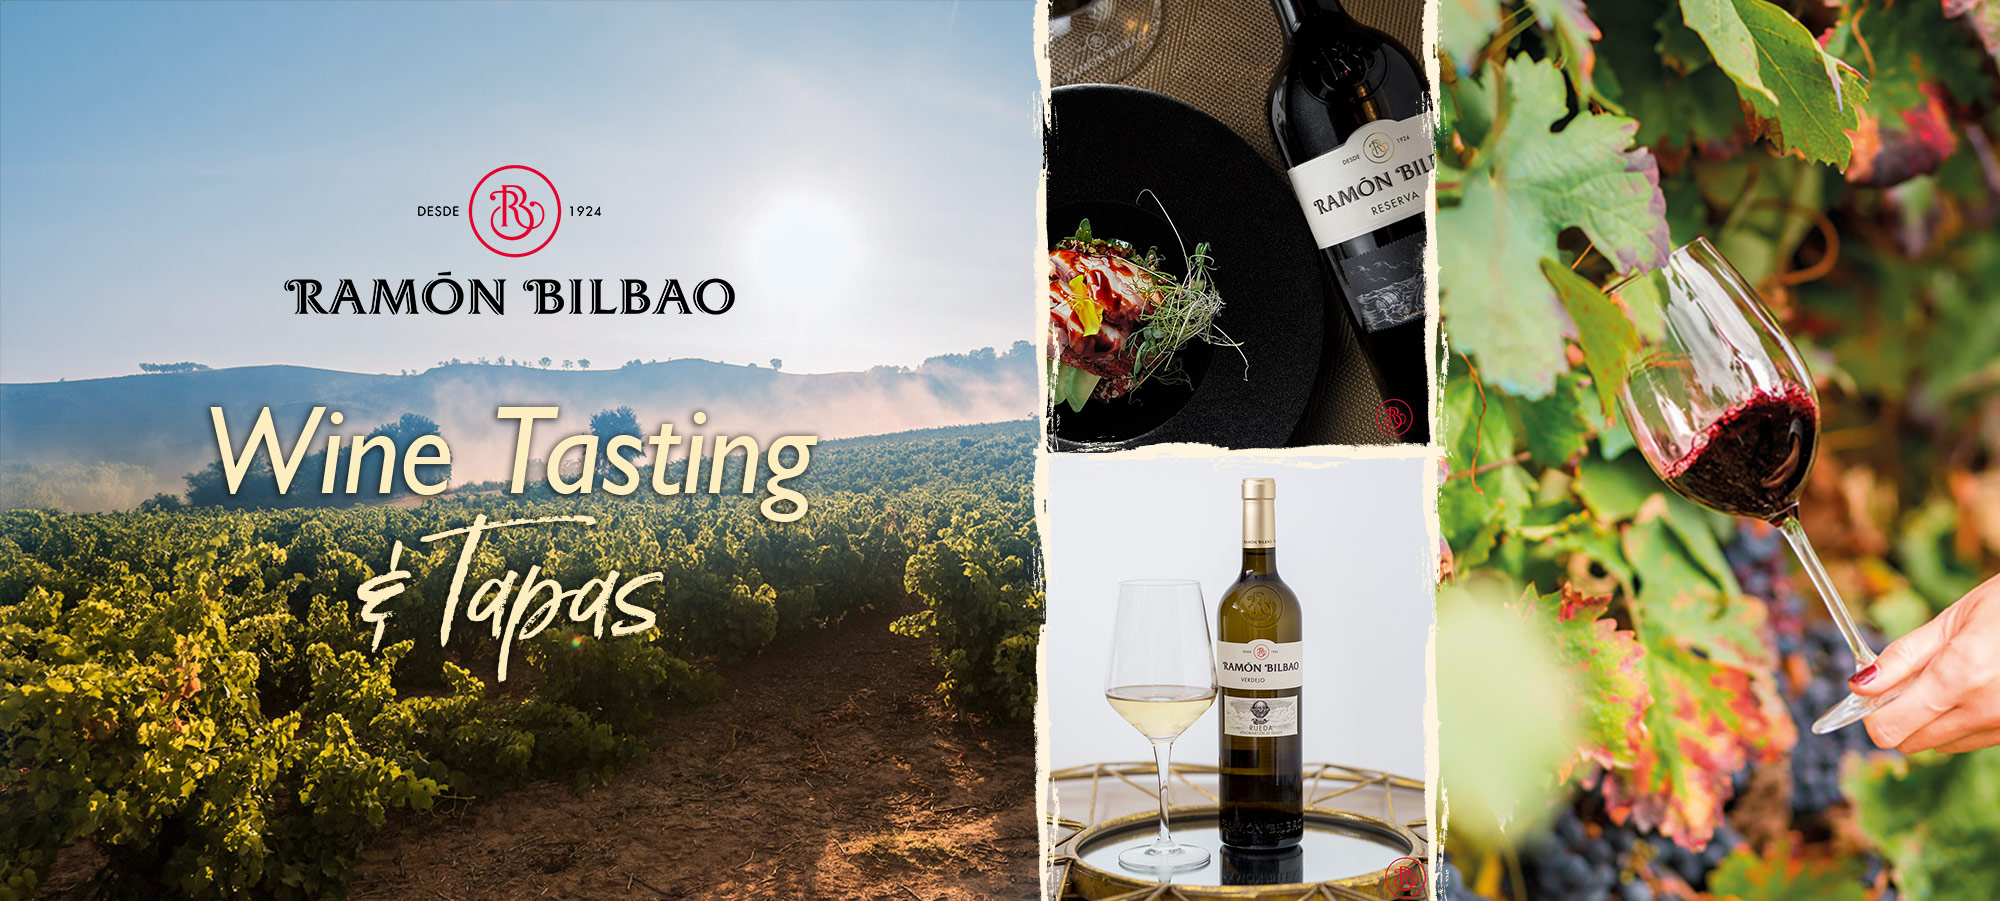 a banner promoting our wine tasting and tapas event.